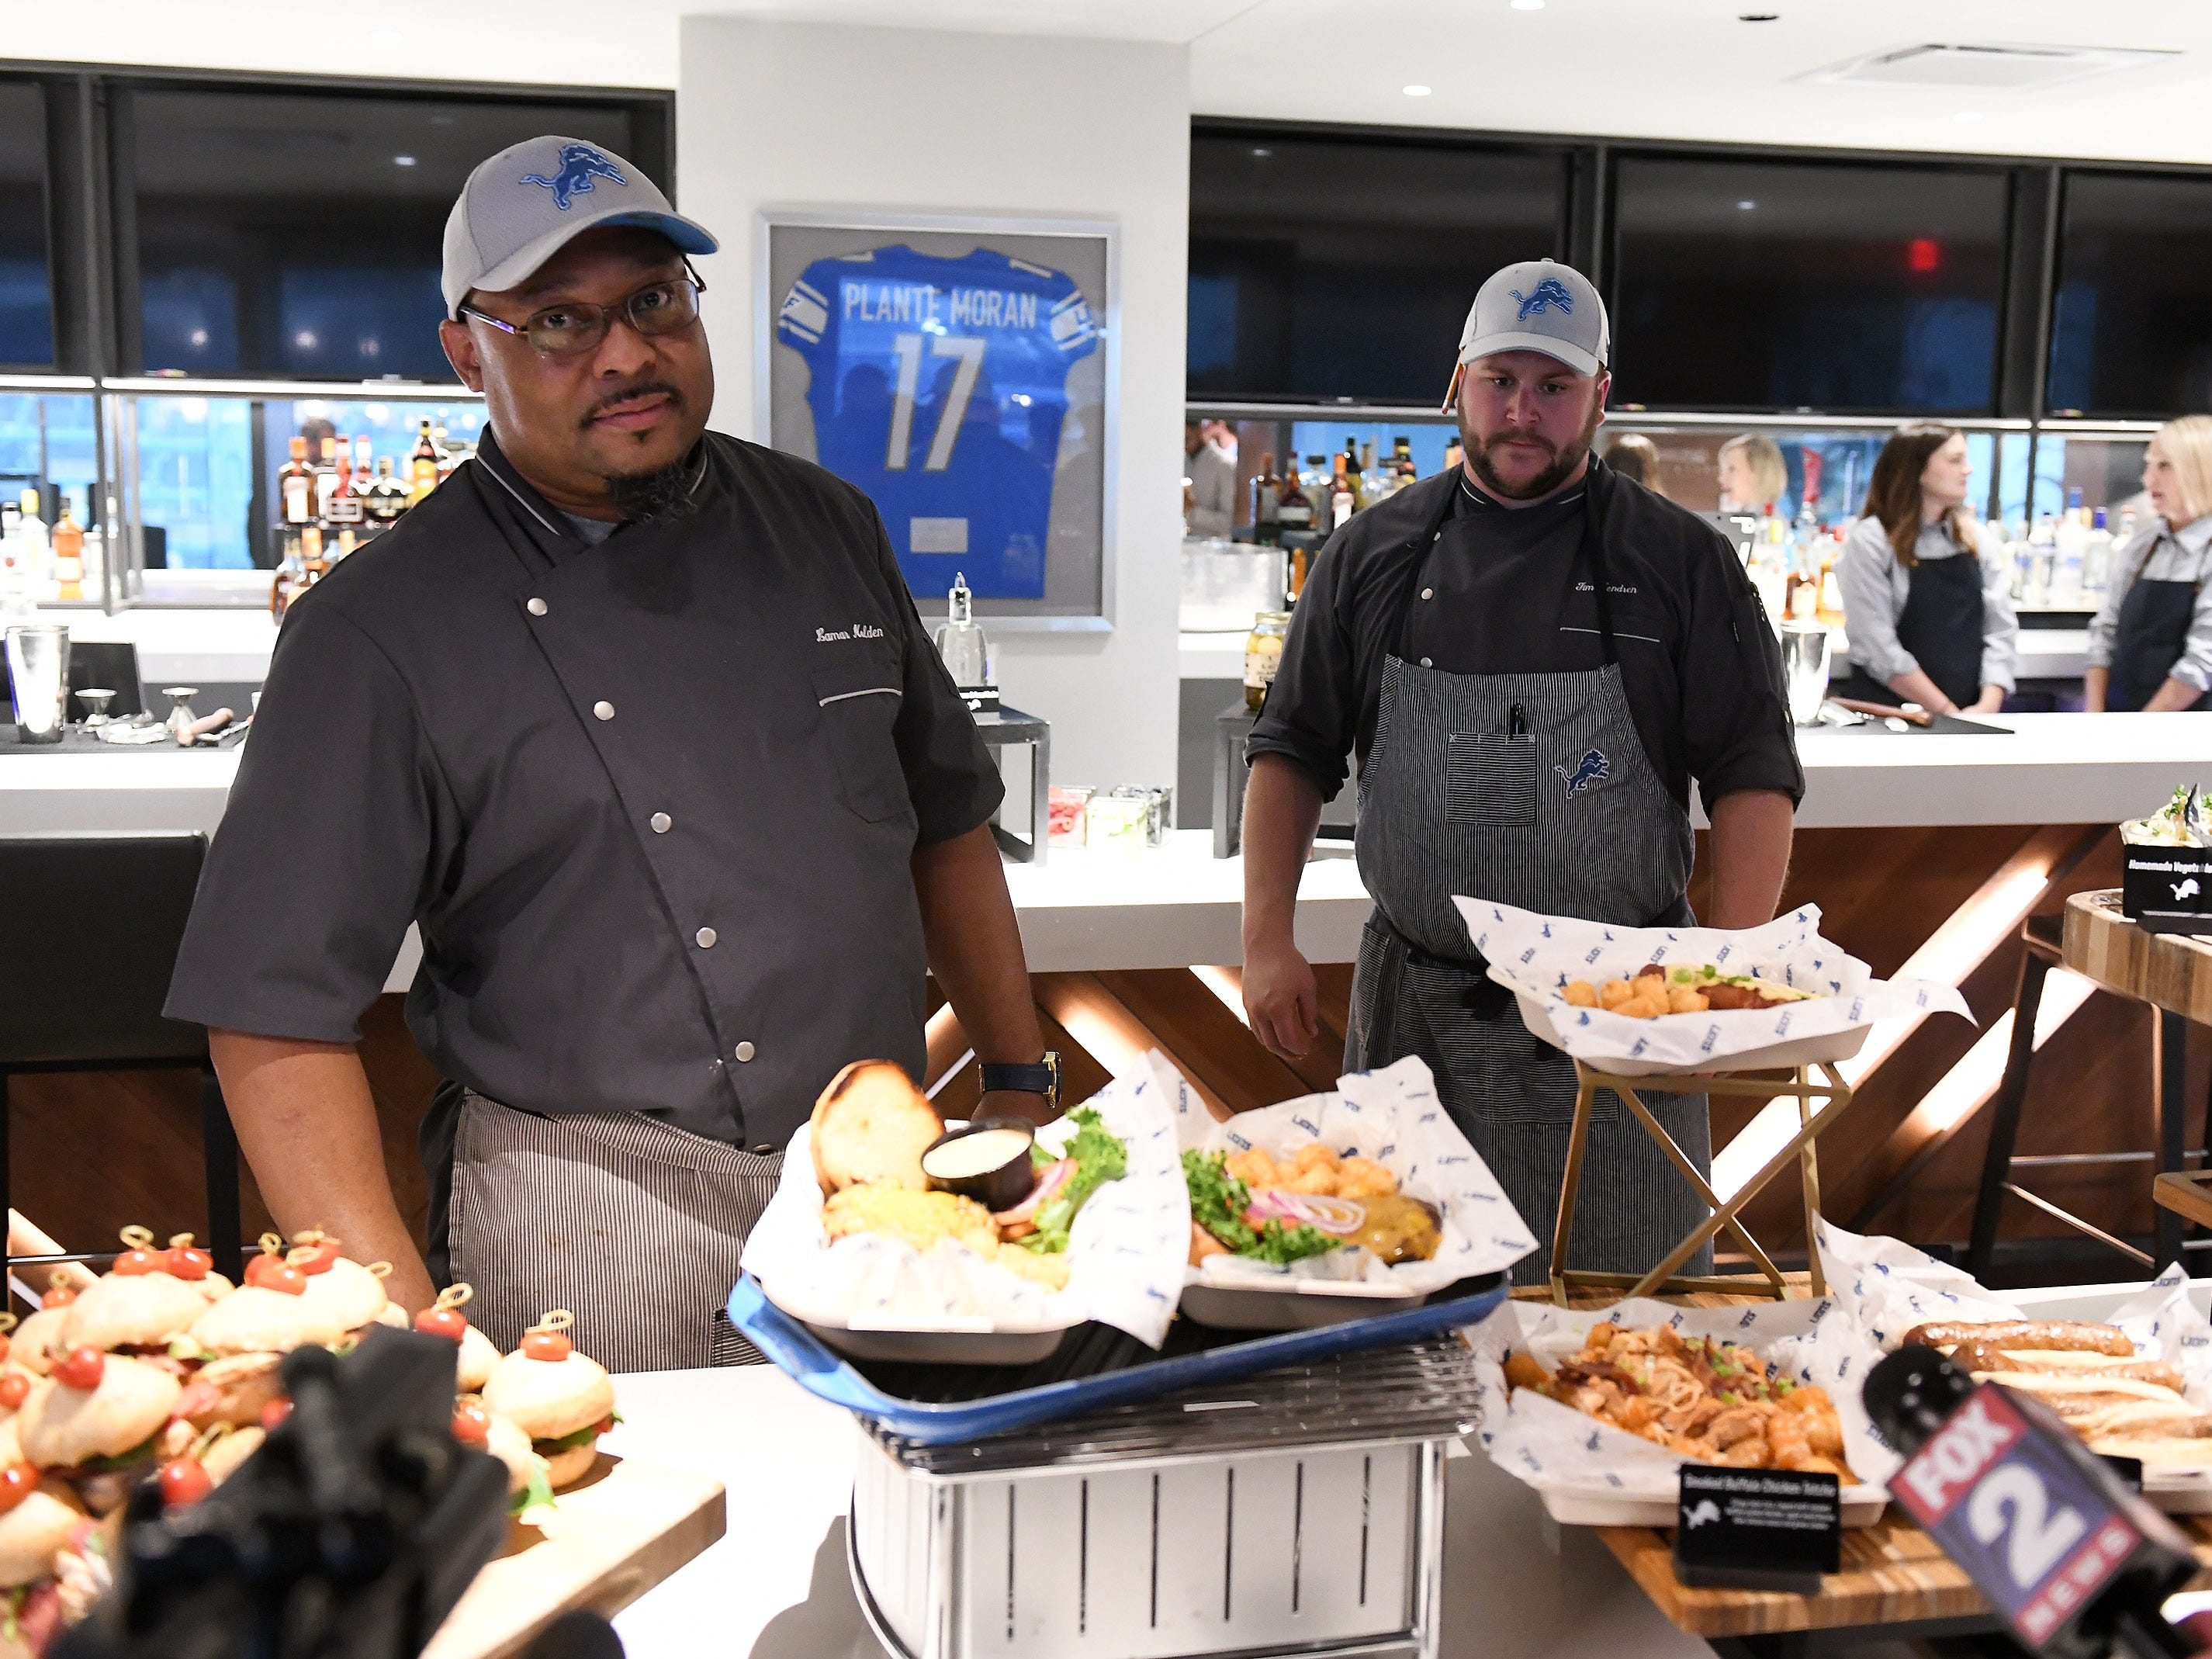 Senior executive chef Lamar Nolden, left, and executive sous chef Tim Hendren show off the new food and concession choices at Ford Field in Detroit.